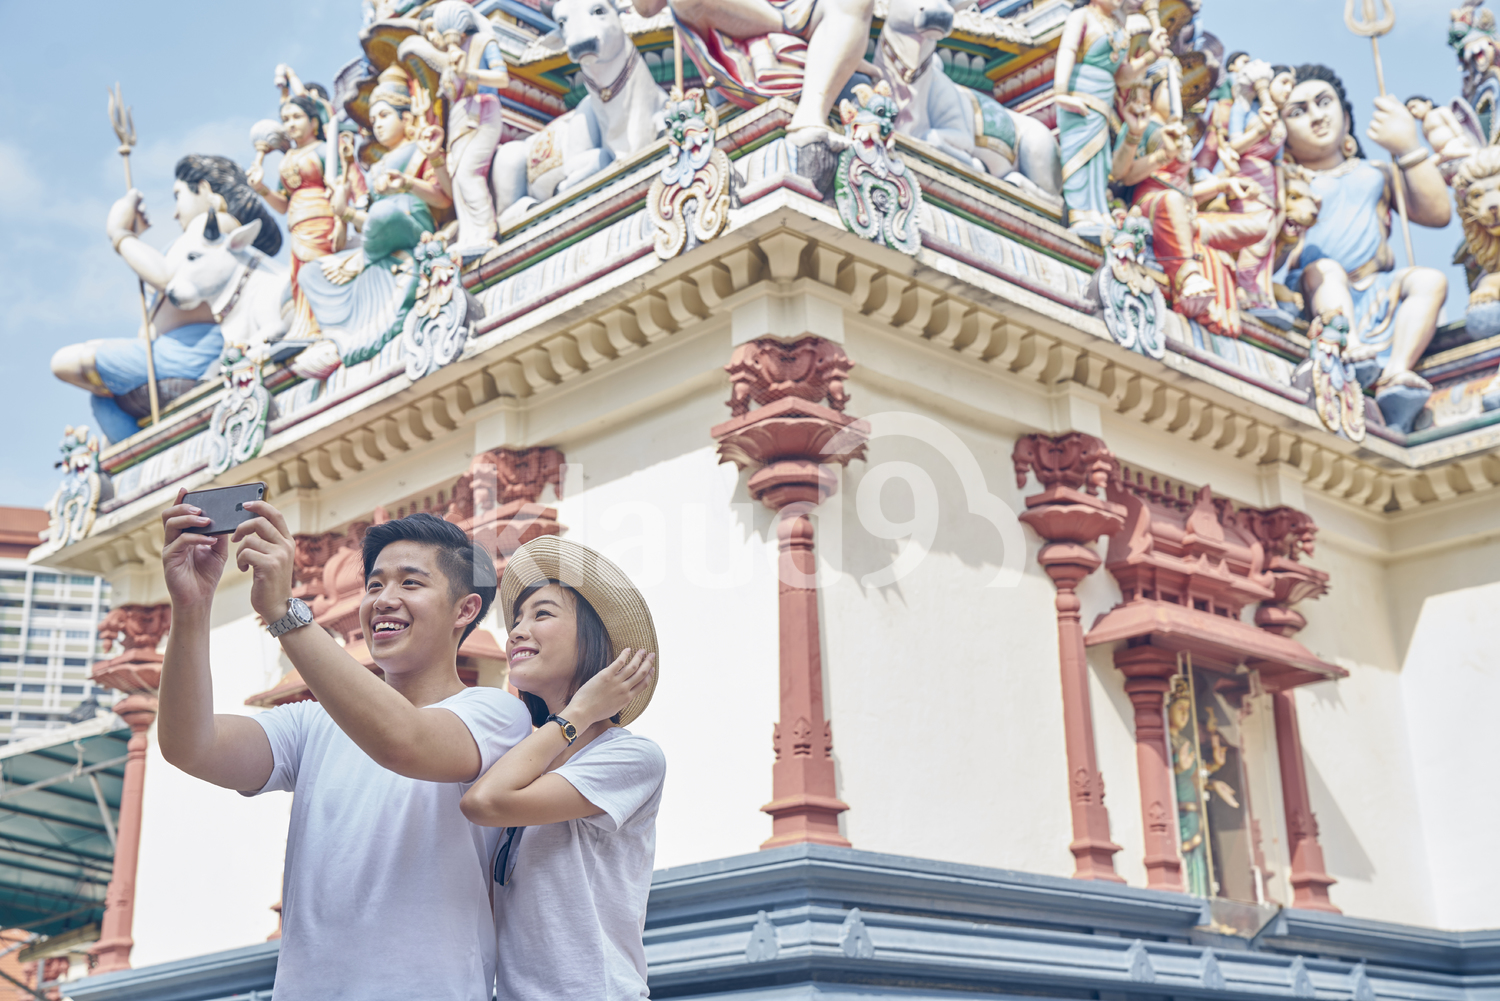 Happy tourists taking a selfie in Sri Mariamman Temple, Singapore